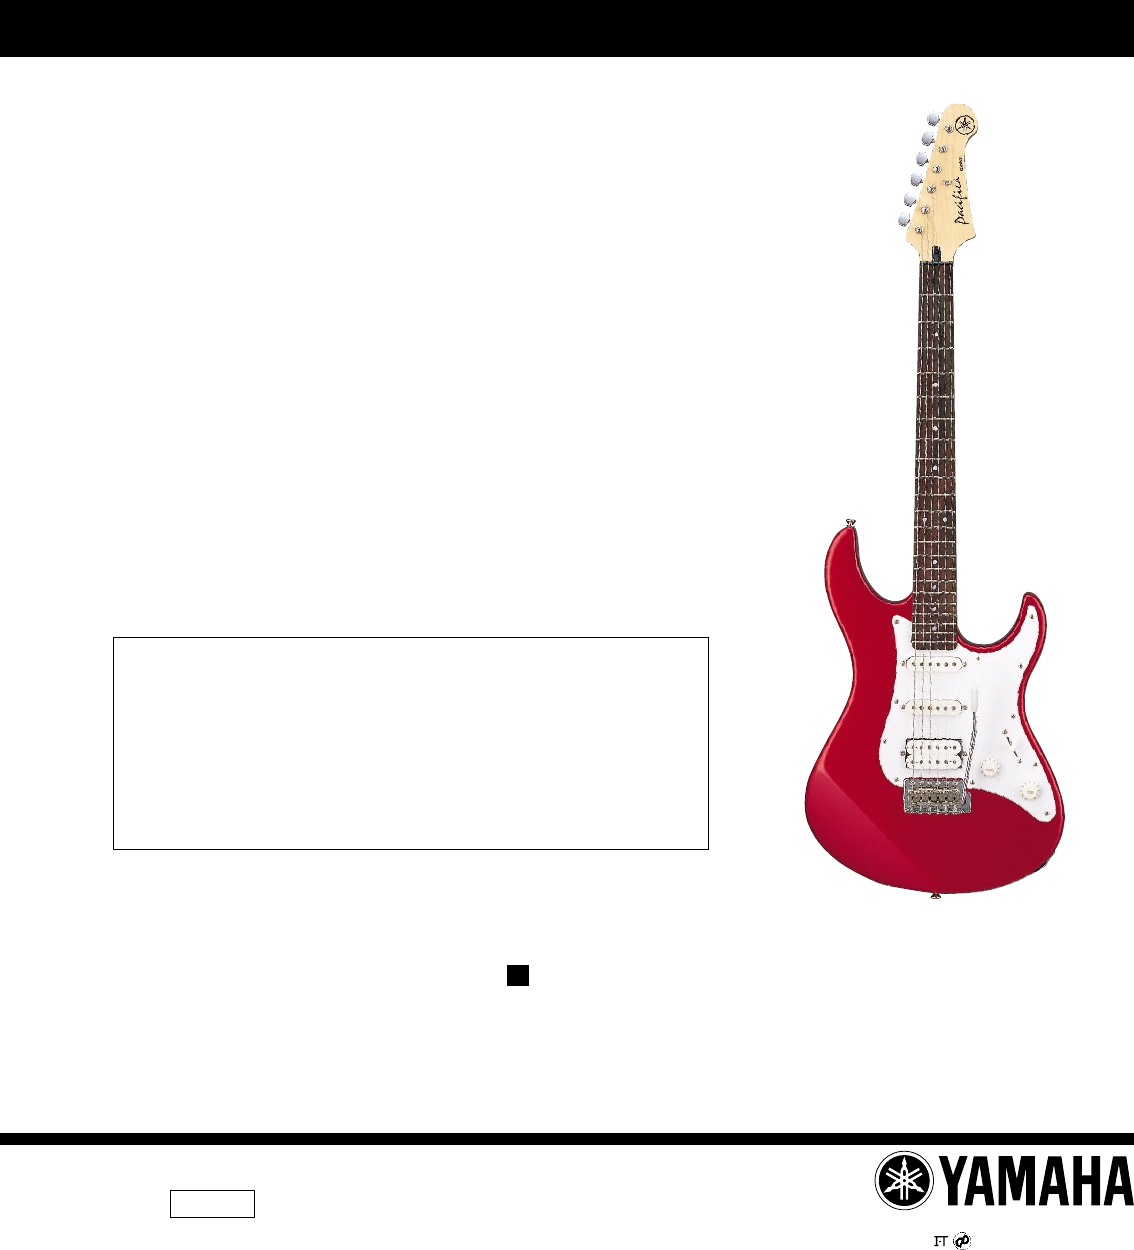 Wiring Diagram Yamaha Pacifica 921 Trusted Diagrams Electric Guitar Schematic For Light Switch U2022